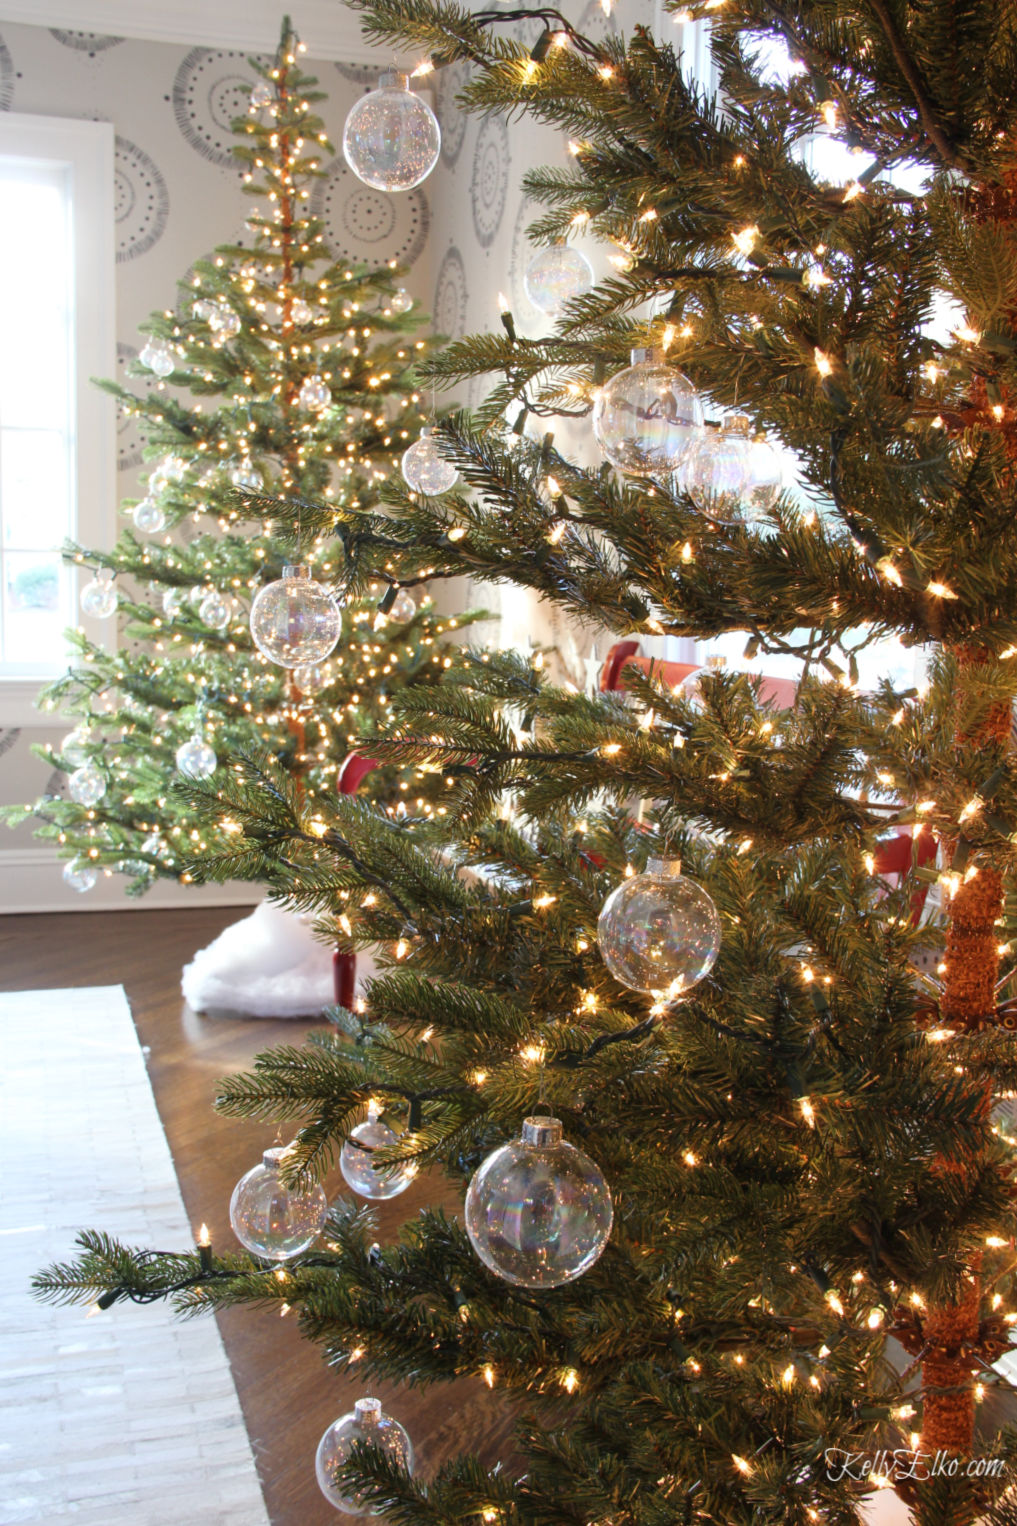 Christmas UnDecorating Tips kellyelko.com #christmasstorage #christmasundecorating #christmastrees #christmaslights